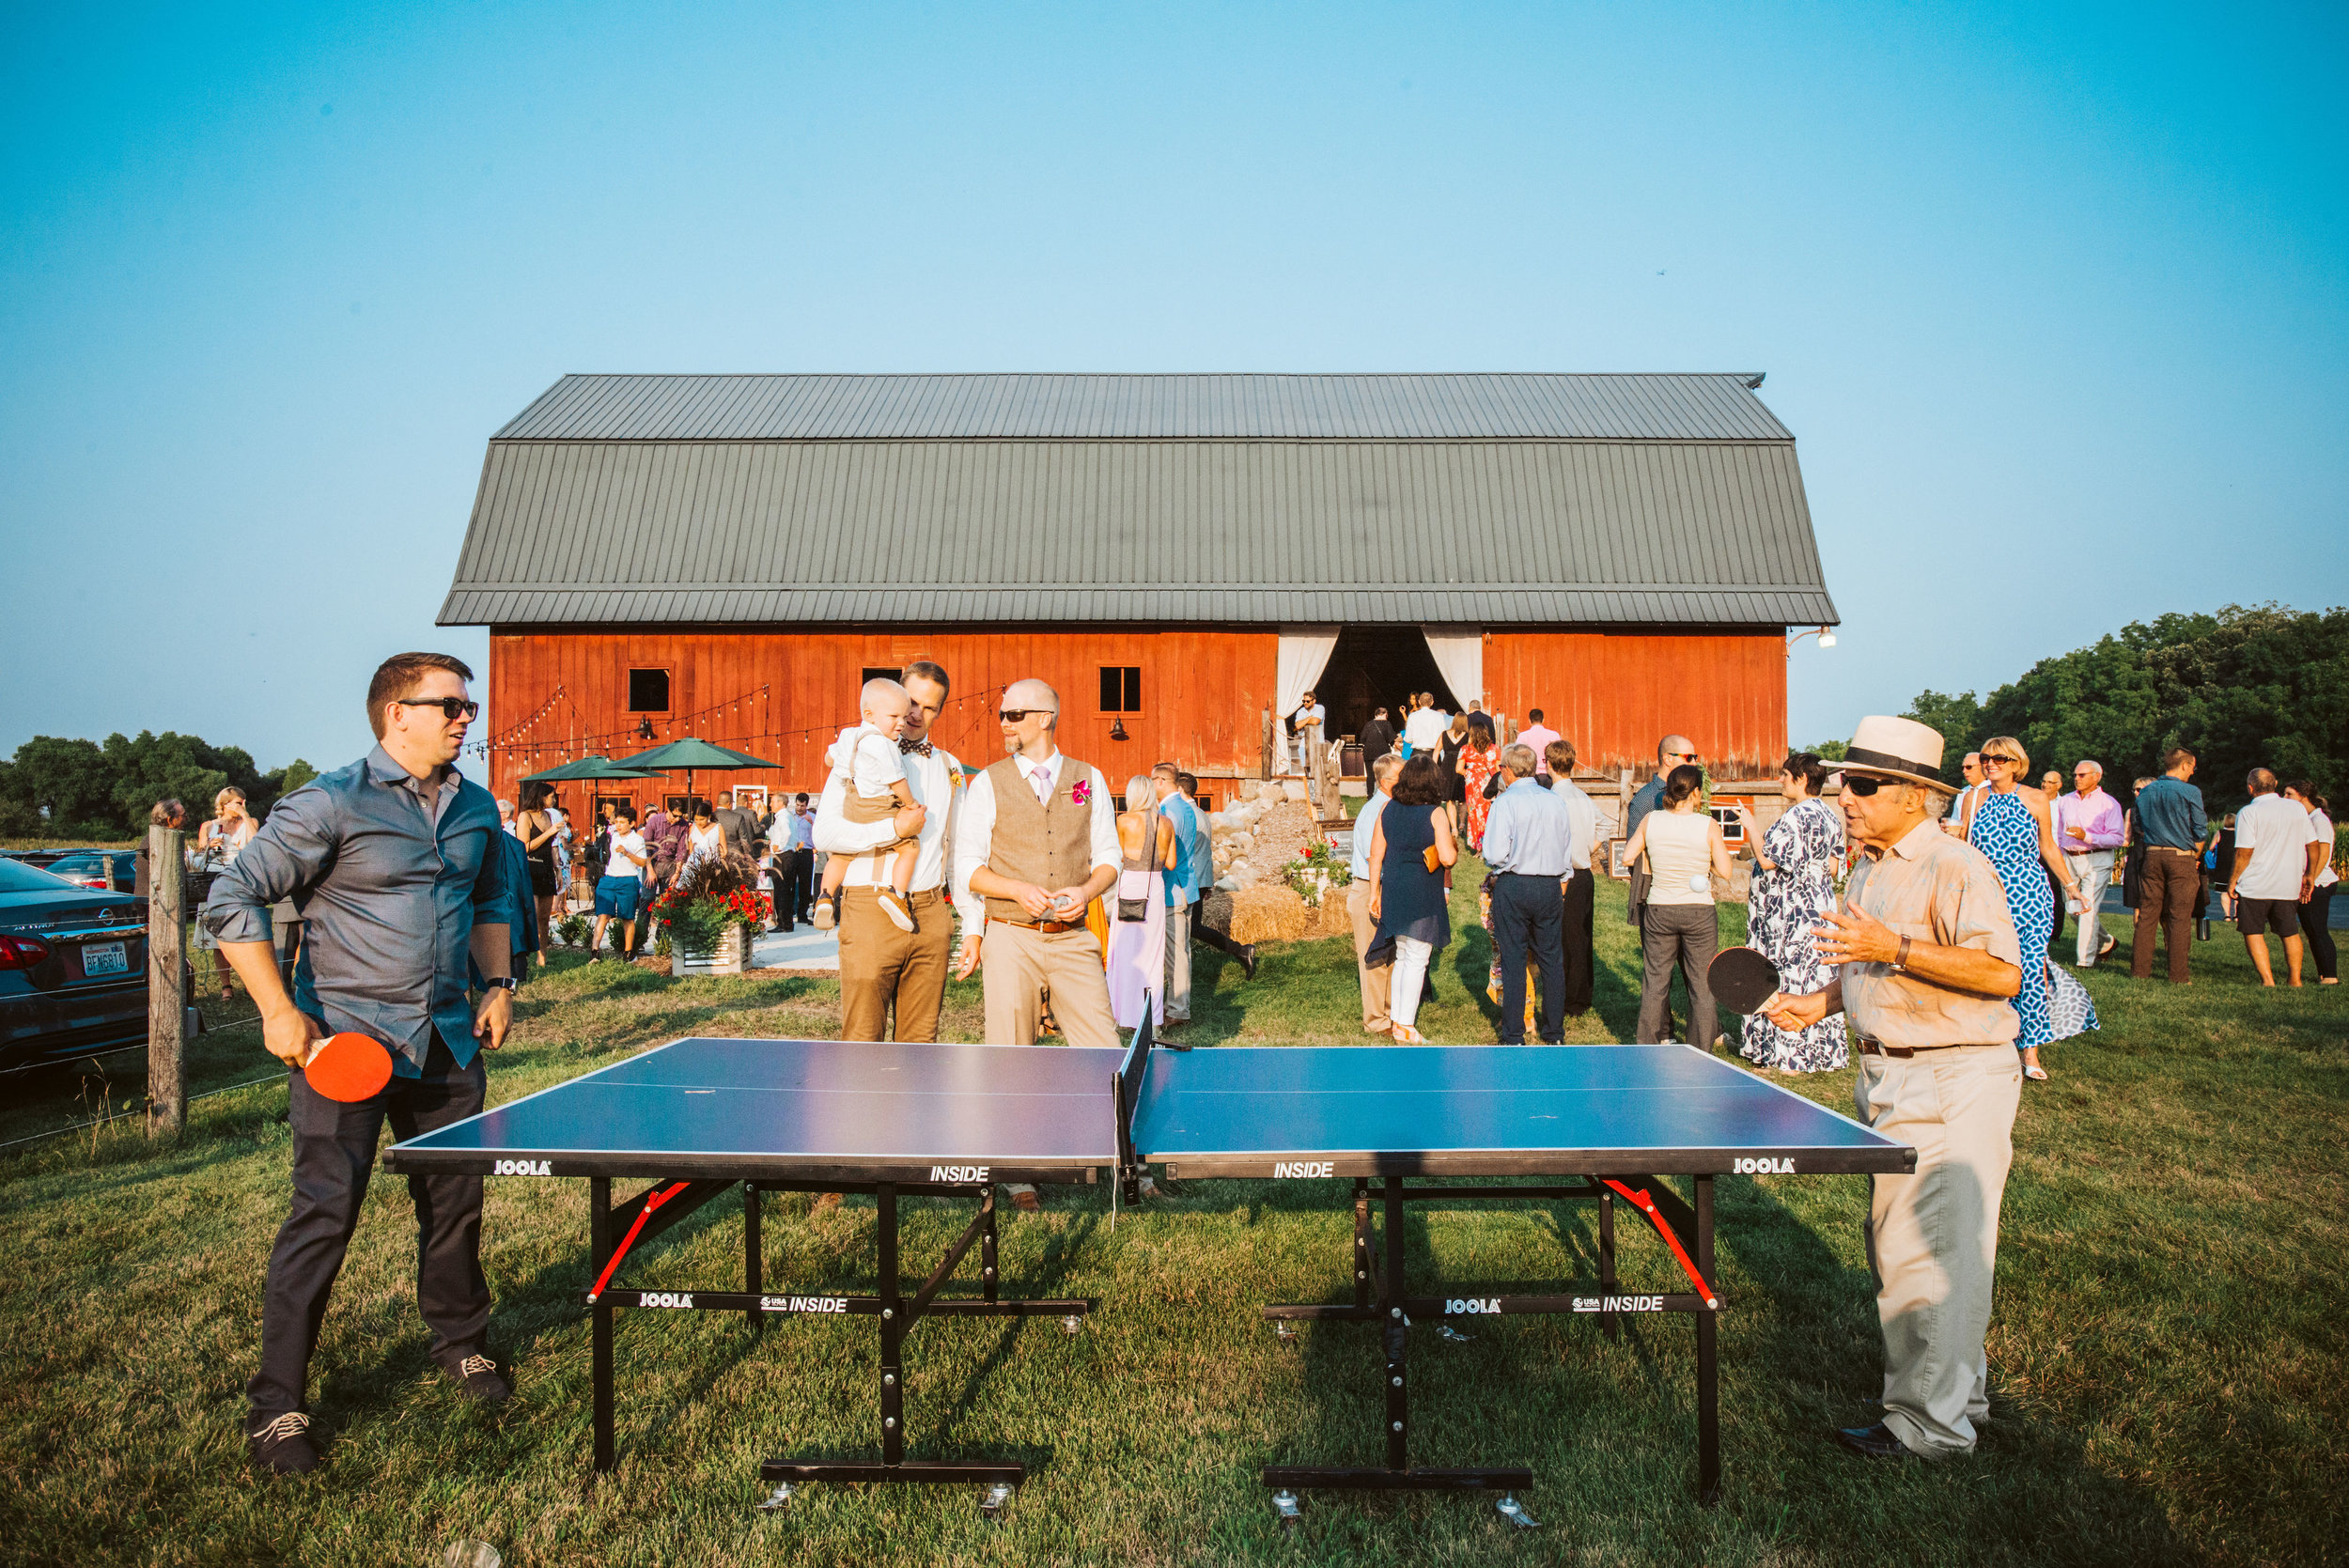 Lawn Games at Barn Wedding